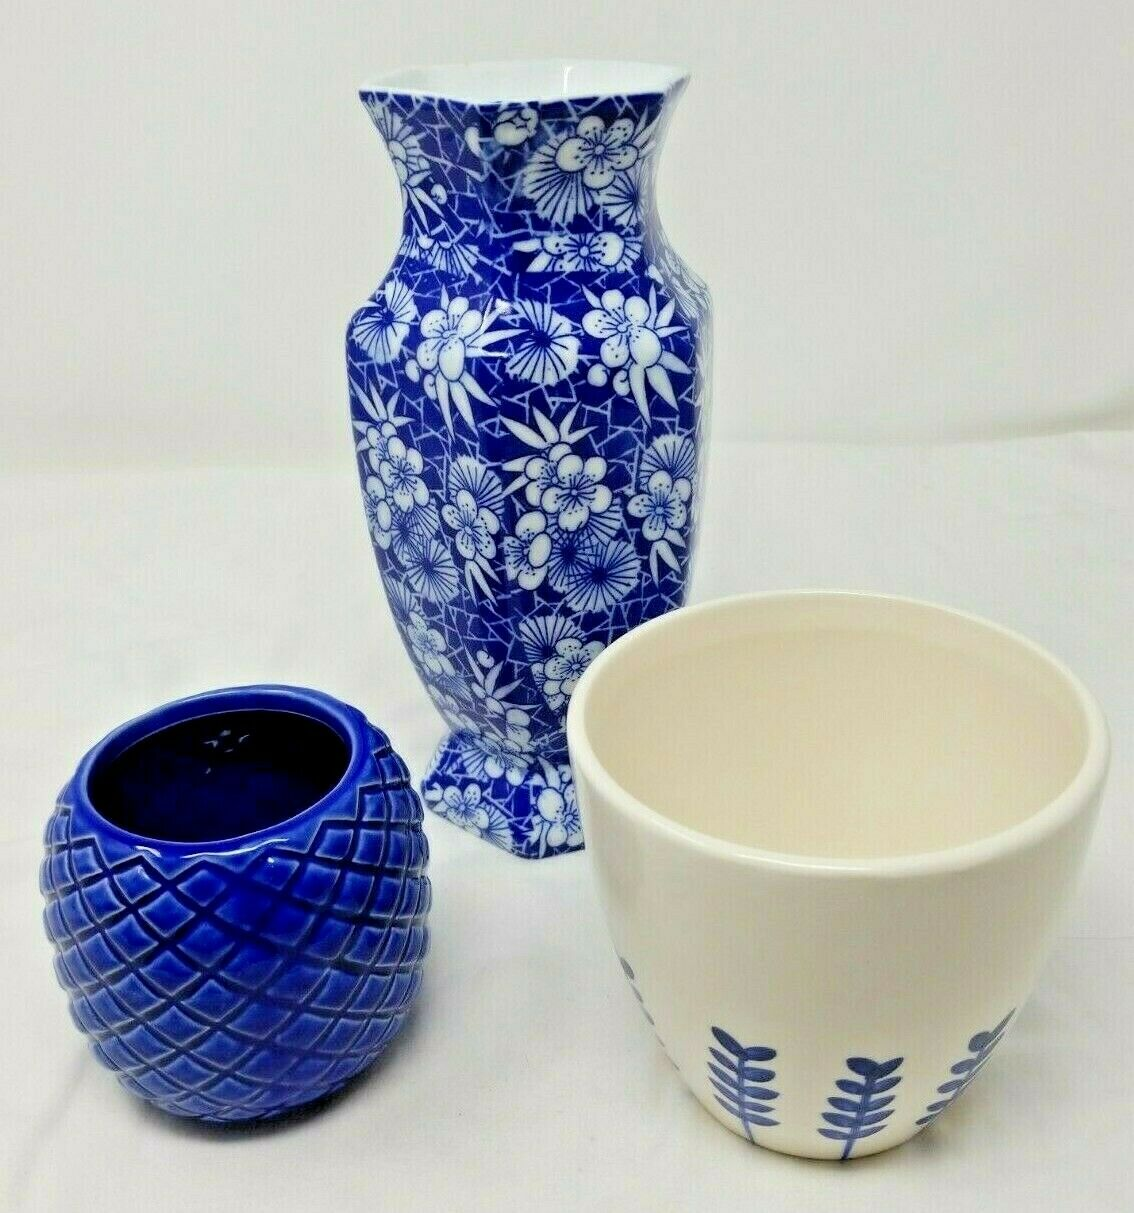 Lot Of 3 Blue And White Vases 10 Tall 4 Tall And 3 Tall For Sale Online